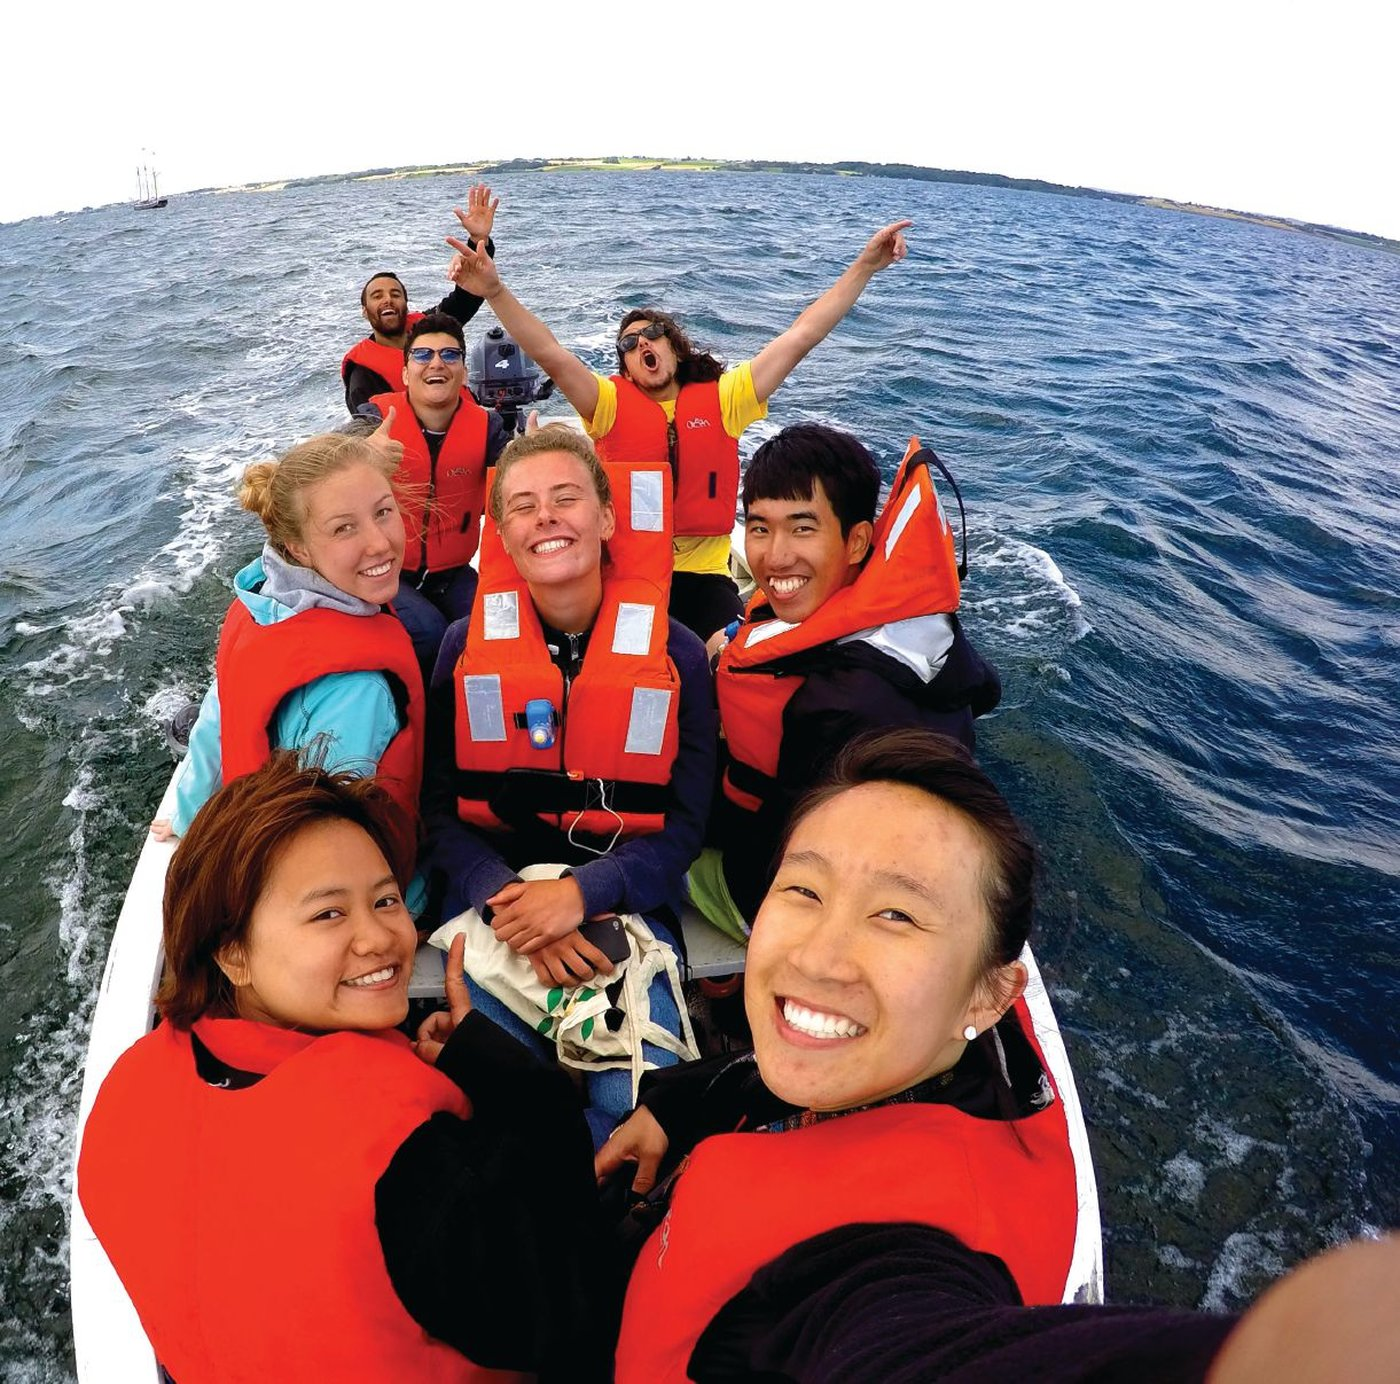 A selfie of Katie Wong (first row, right) shows her on an outing with fellow participants in a Youth Camp and Exchange Program.